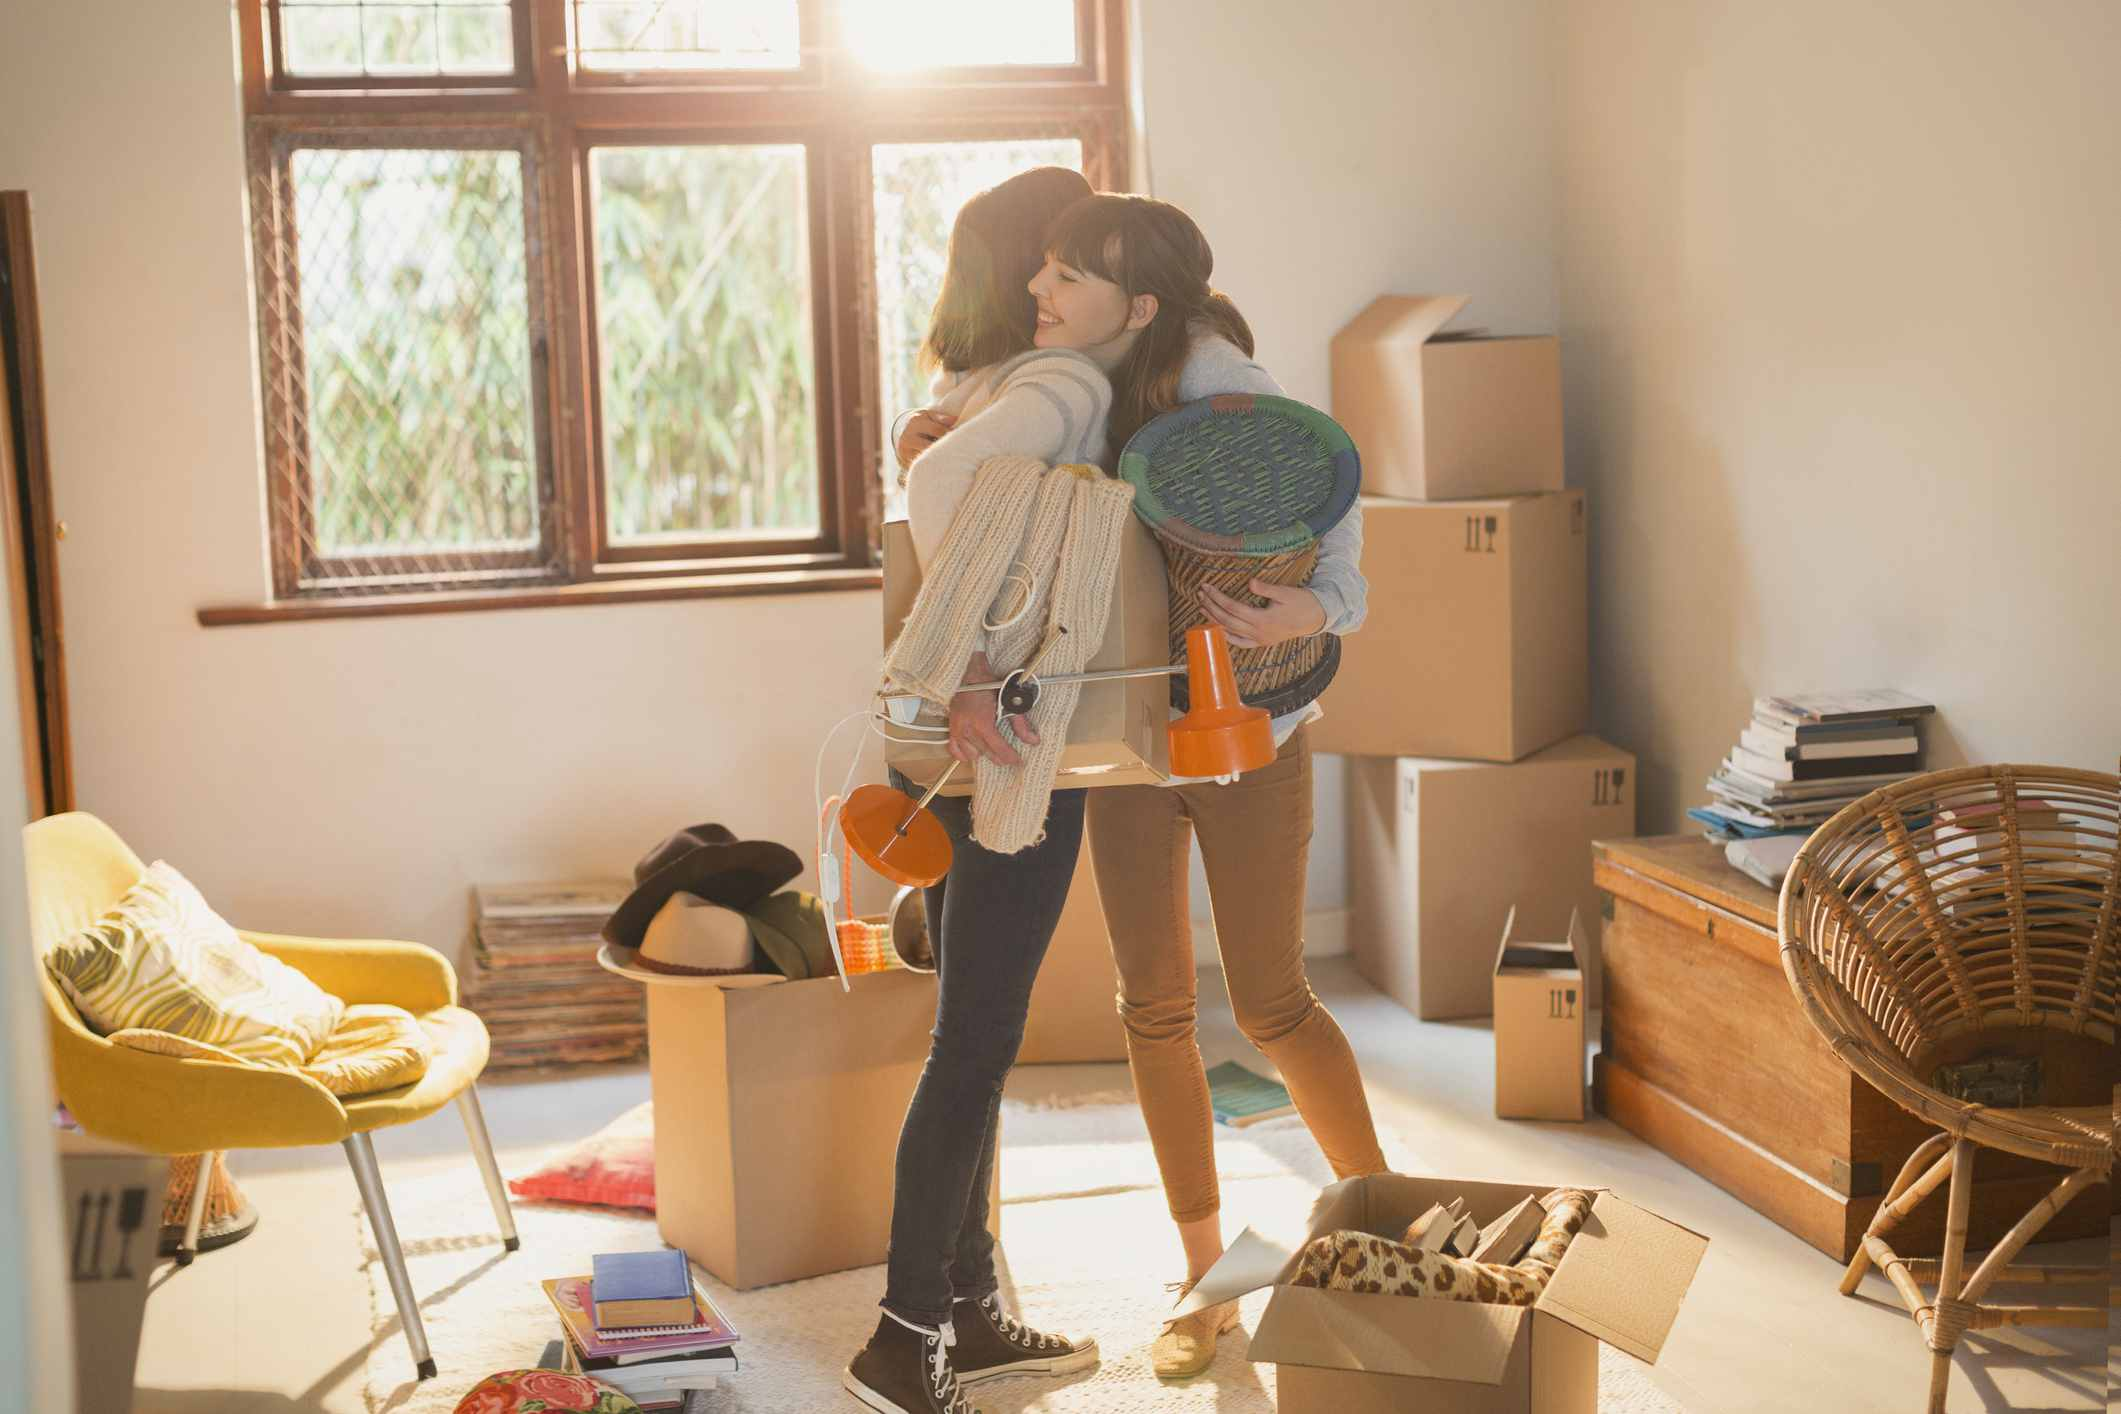 Mother and daughter hugging in a college dorm